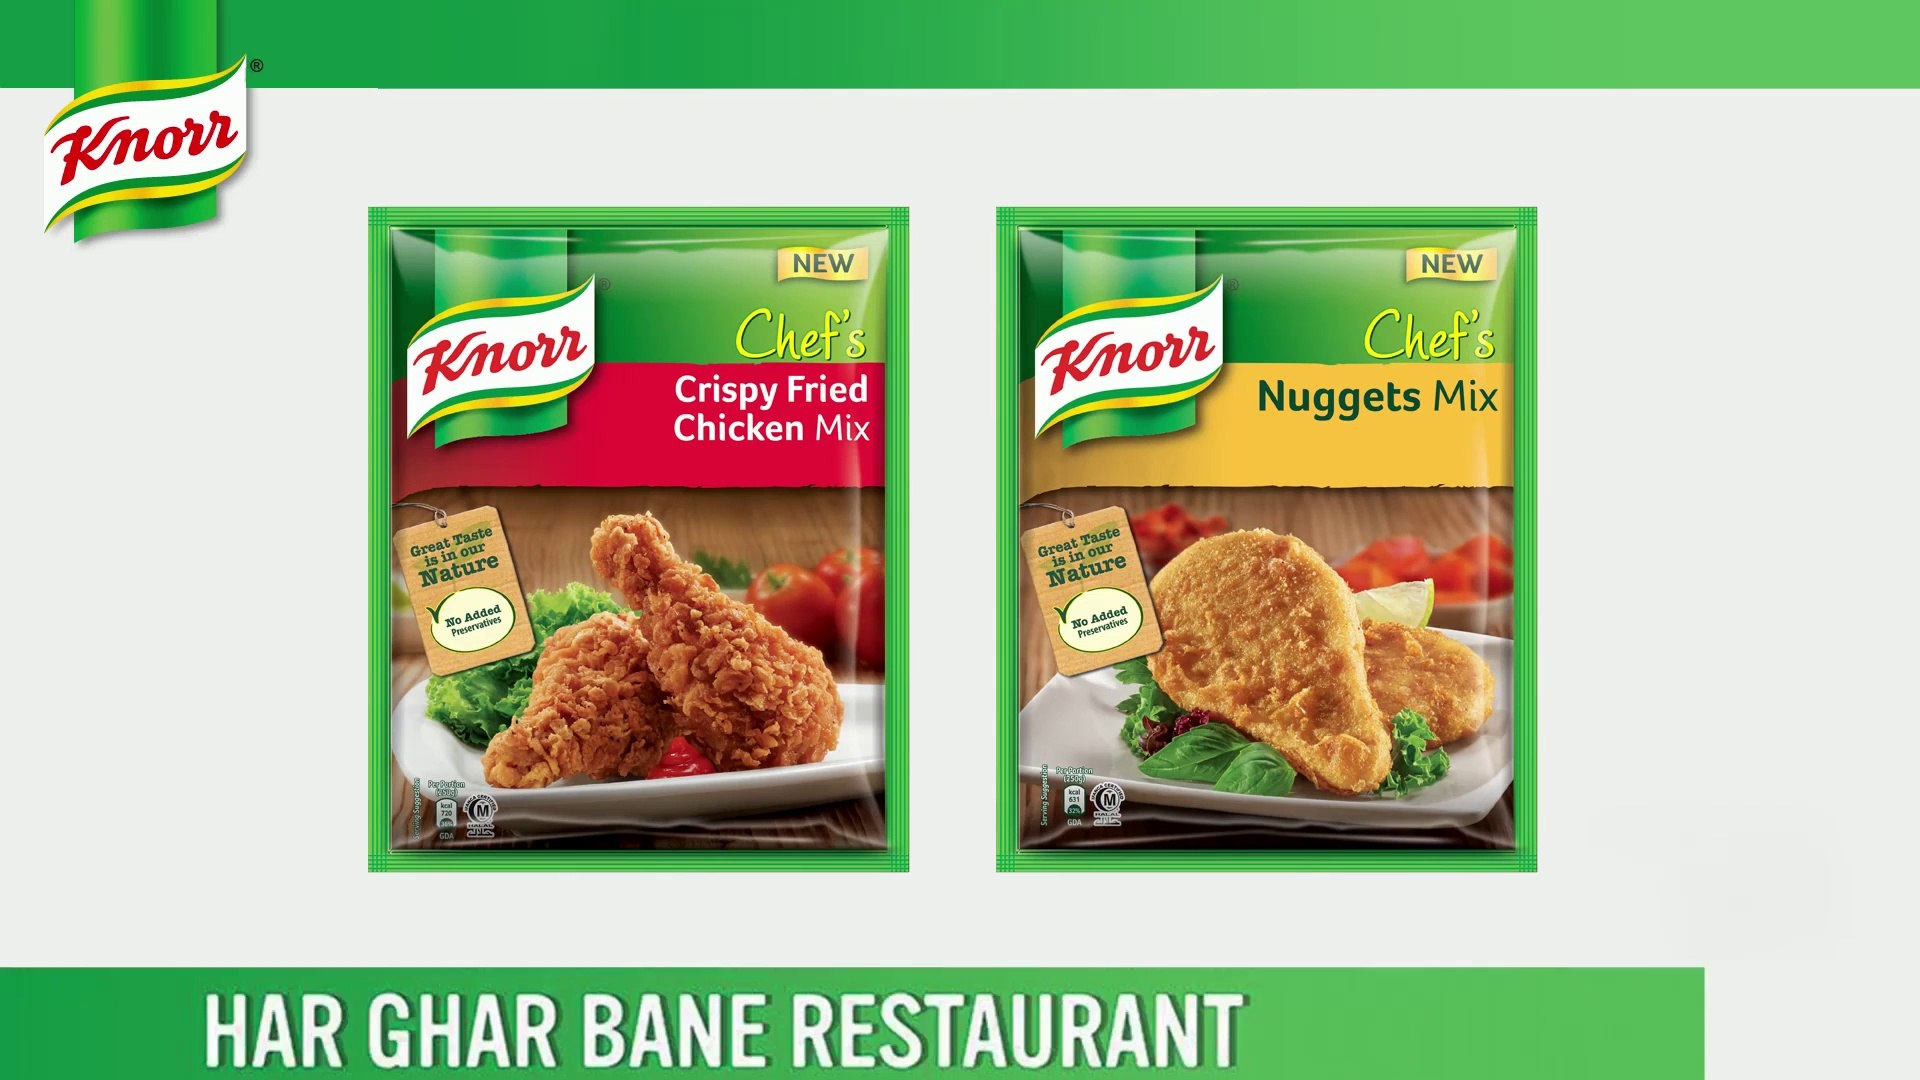 Easy To Make Knorr Crispy Fried Chicken Recipe Video Dailymotion